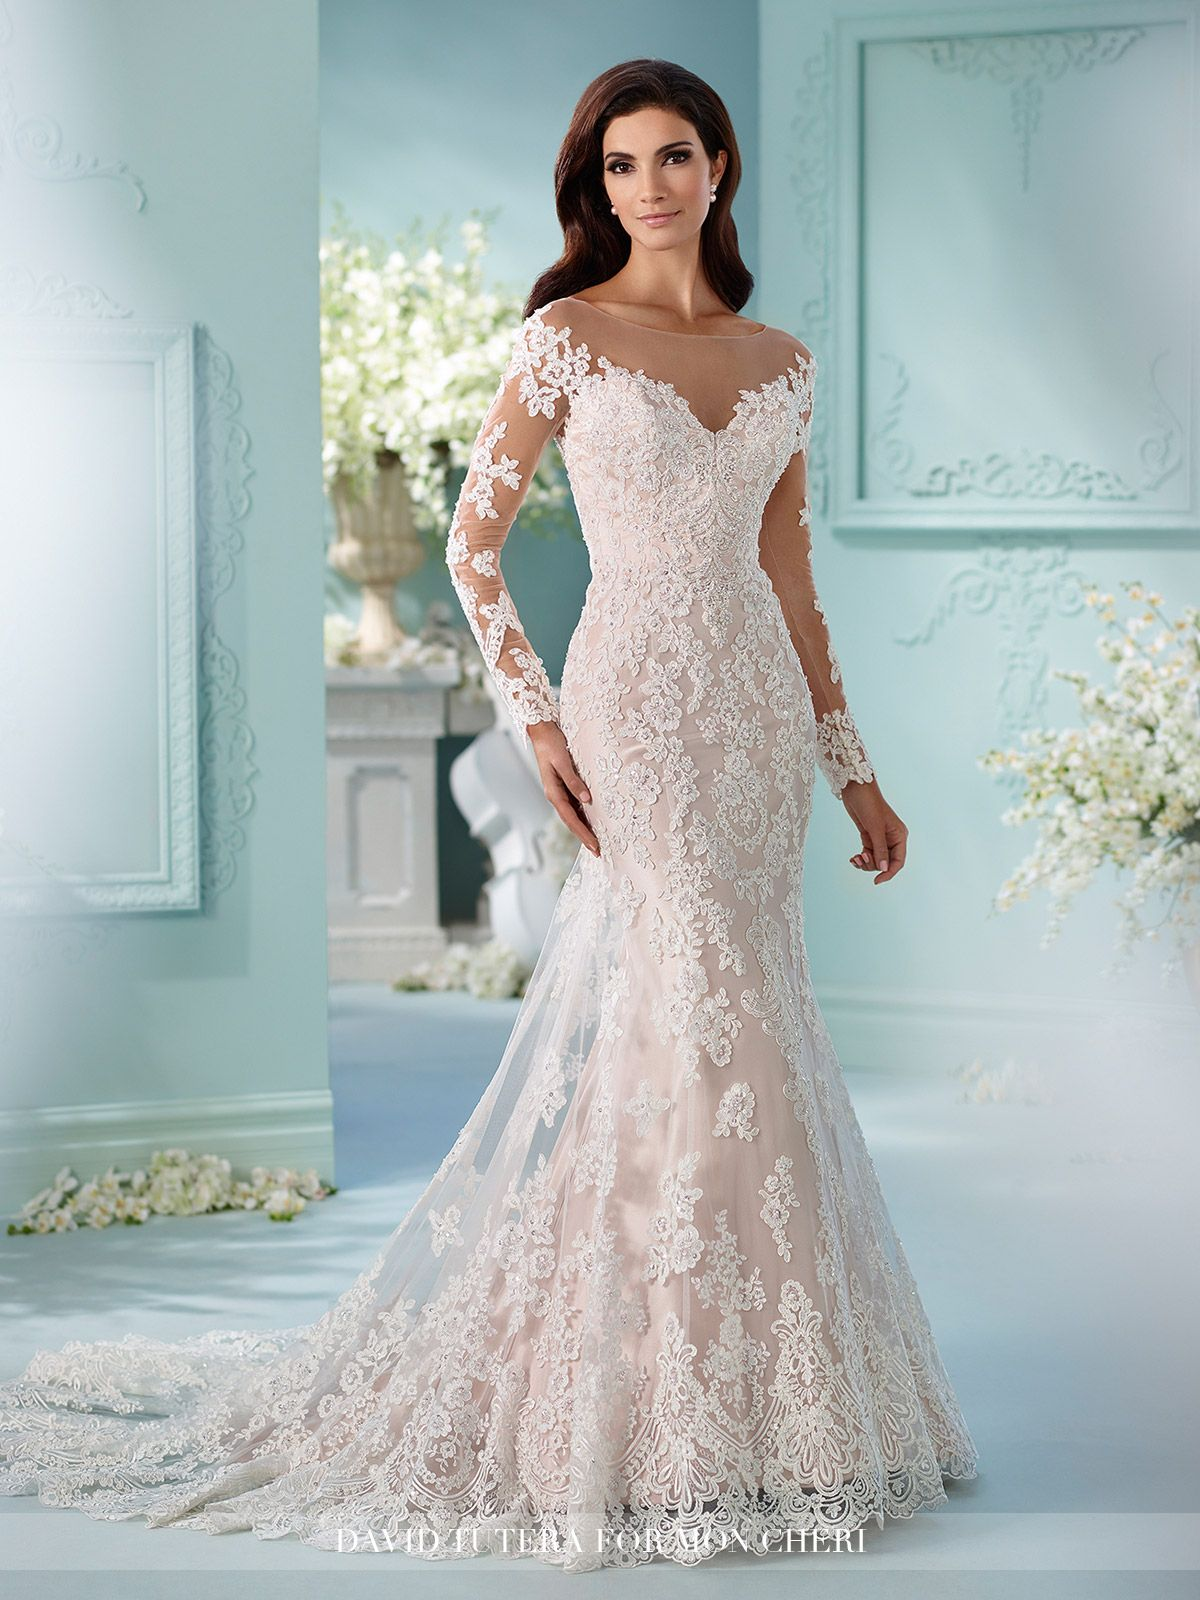 long sleeve wedding dresses Tulle over satin fit and flare cage dress with hand beaded Alencon lace appliques Sleeve Wedding